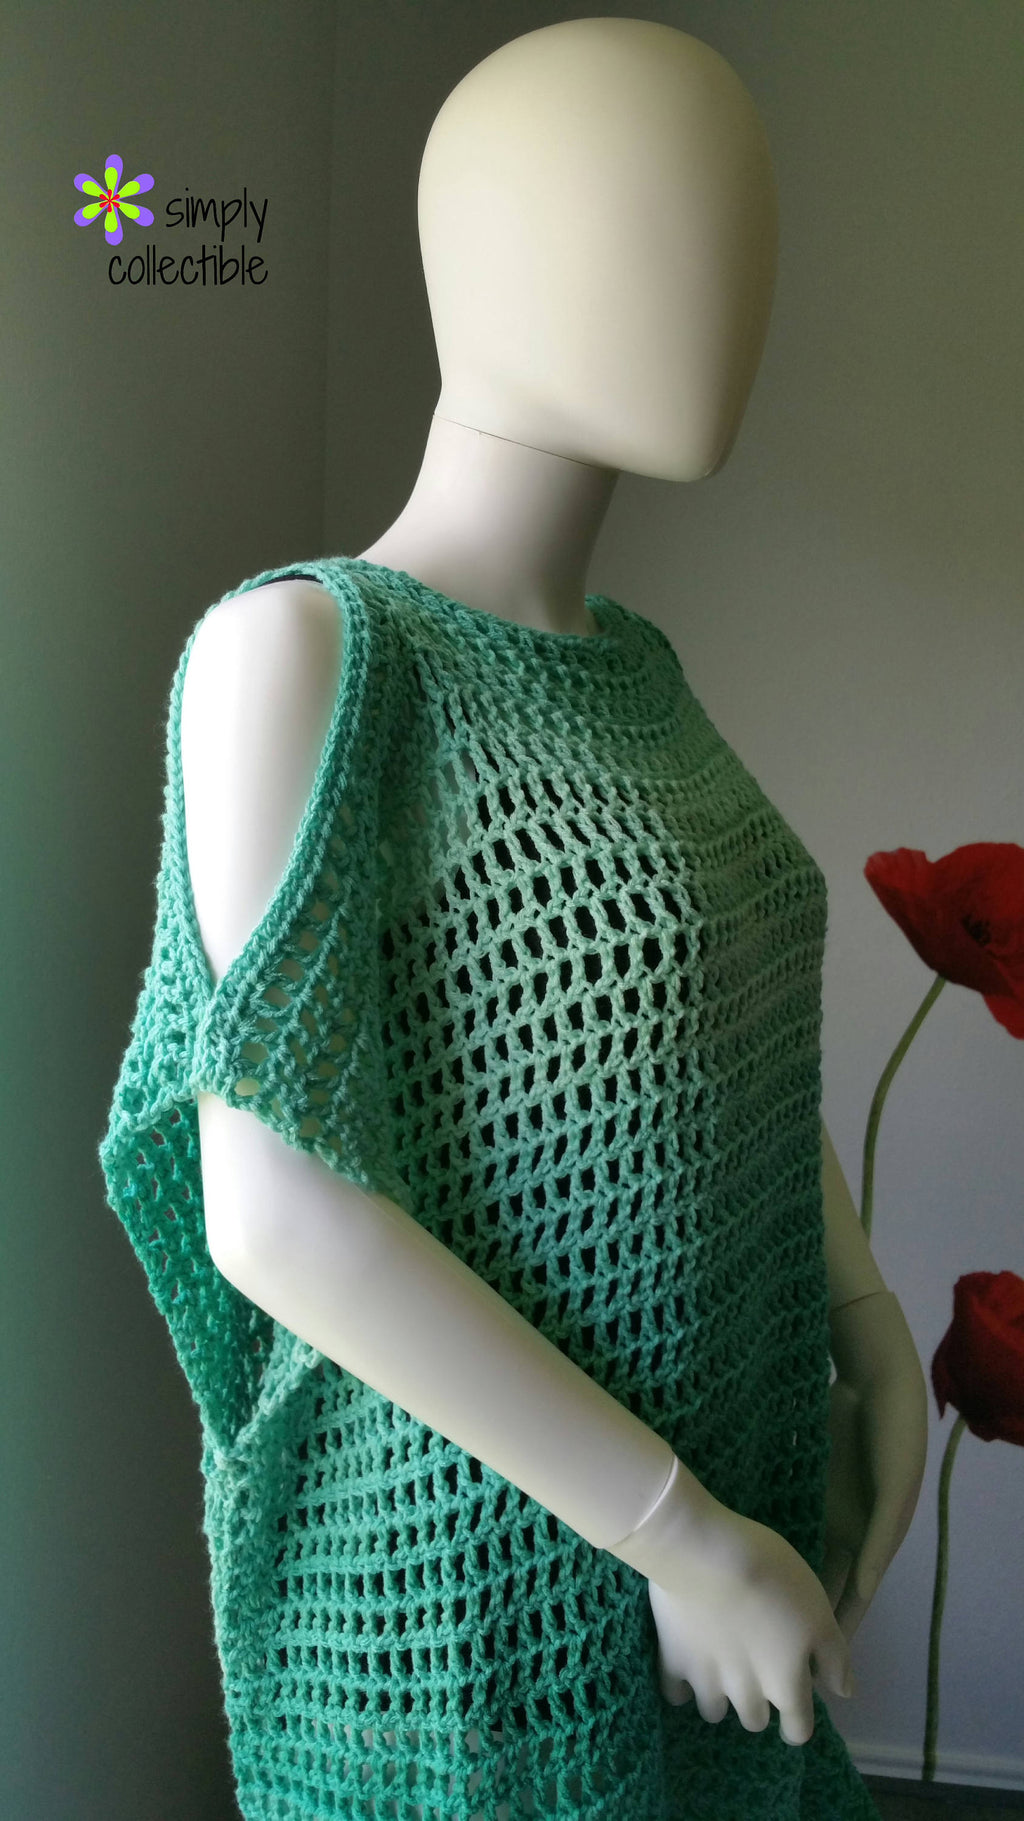 Coraline's Endless Summer Tunic & Beach Cover Up Crochet Pattern